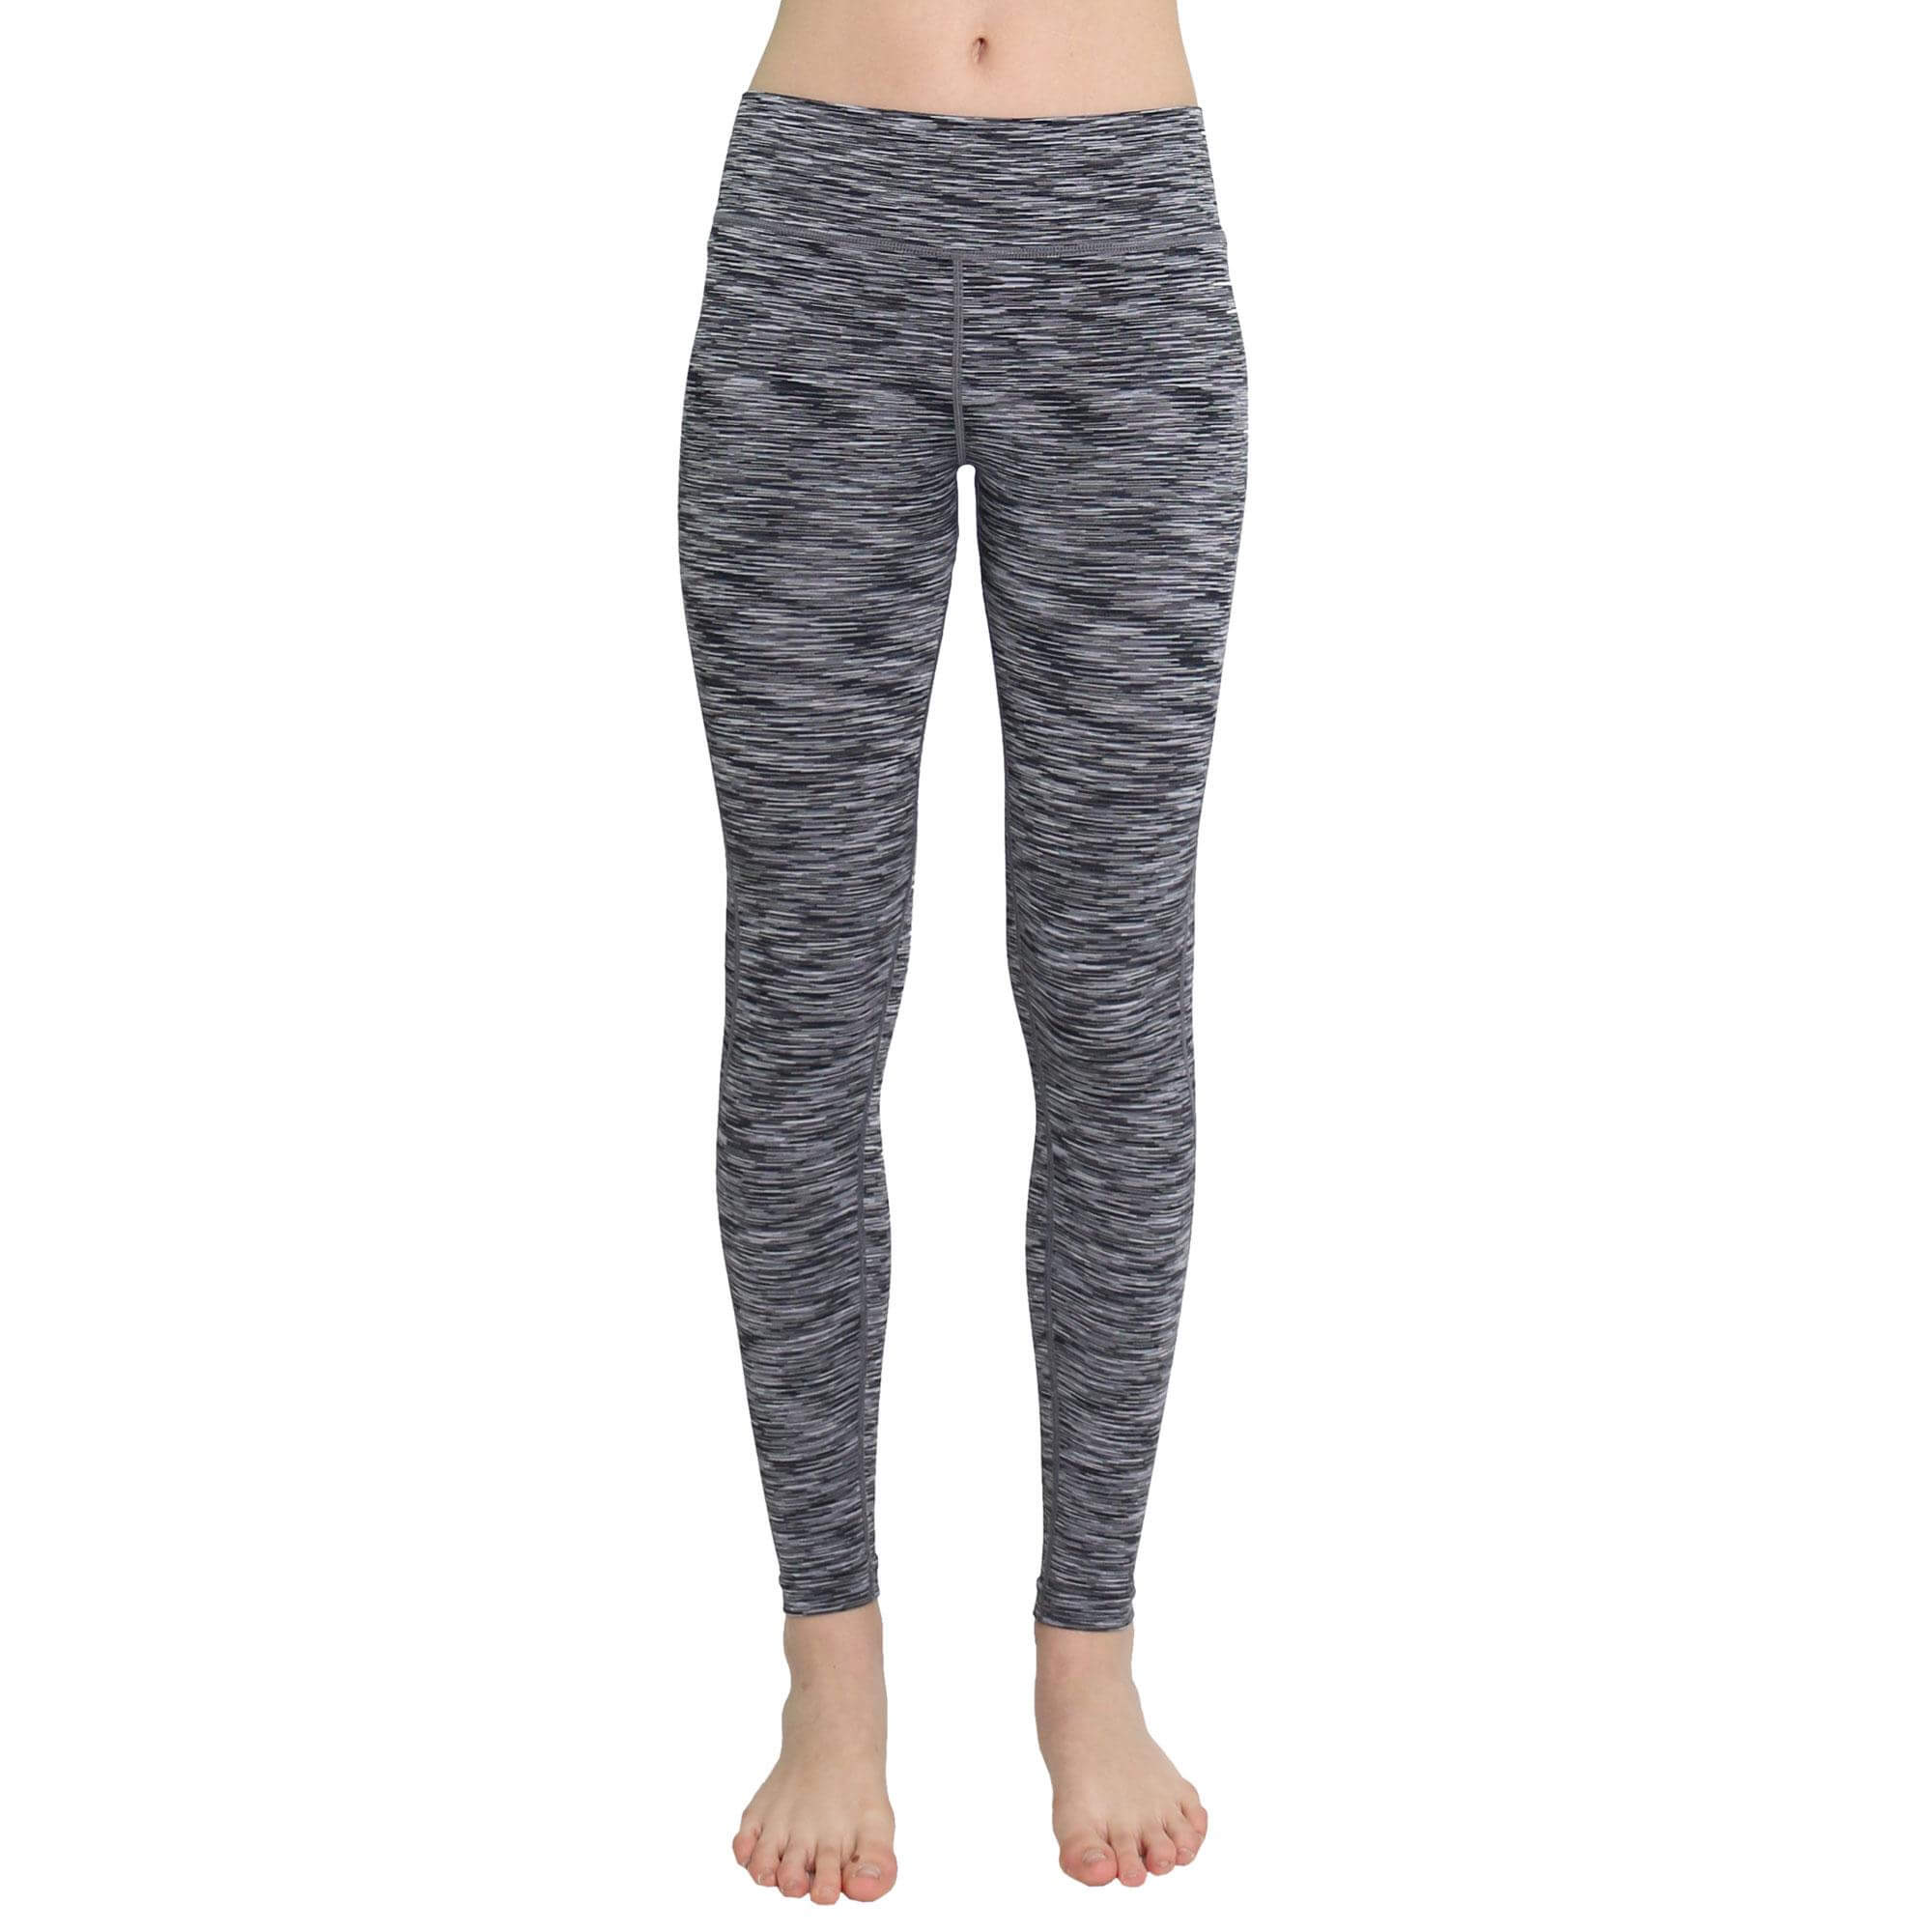 O to S Amazing Sport Solid Stripped Yoga Pants